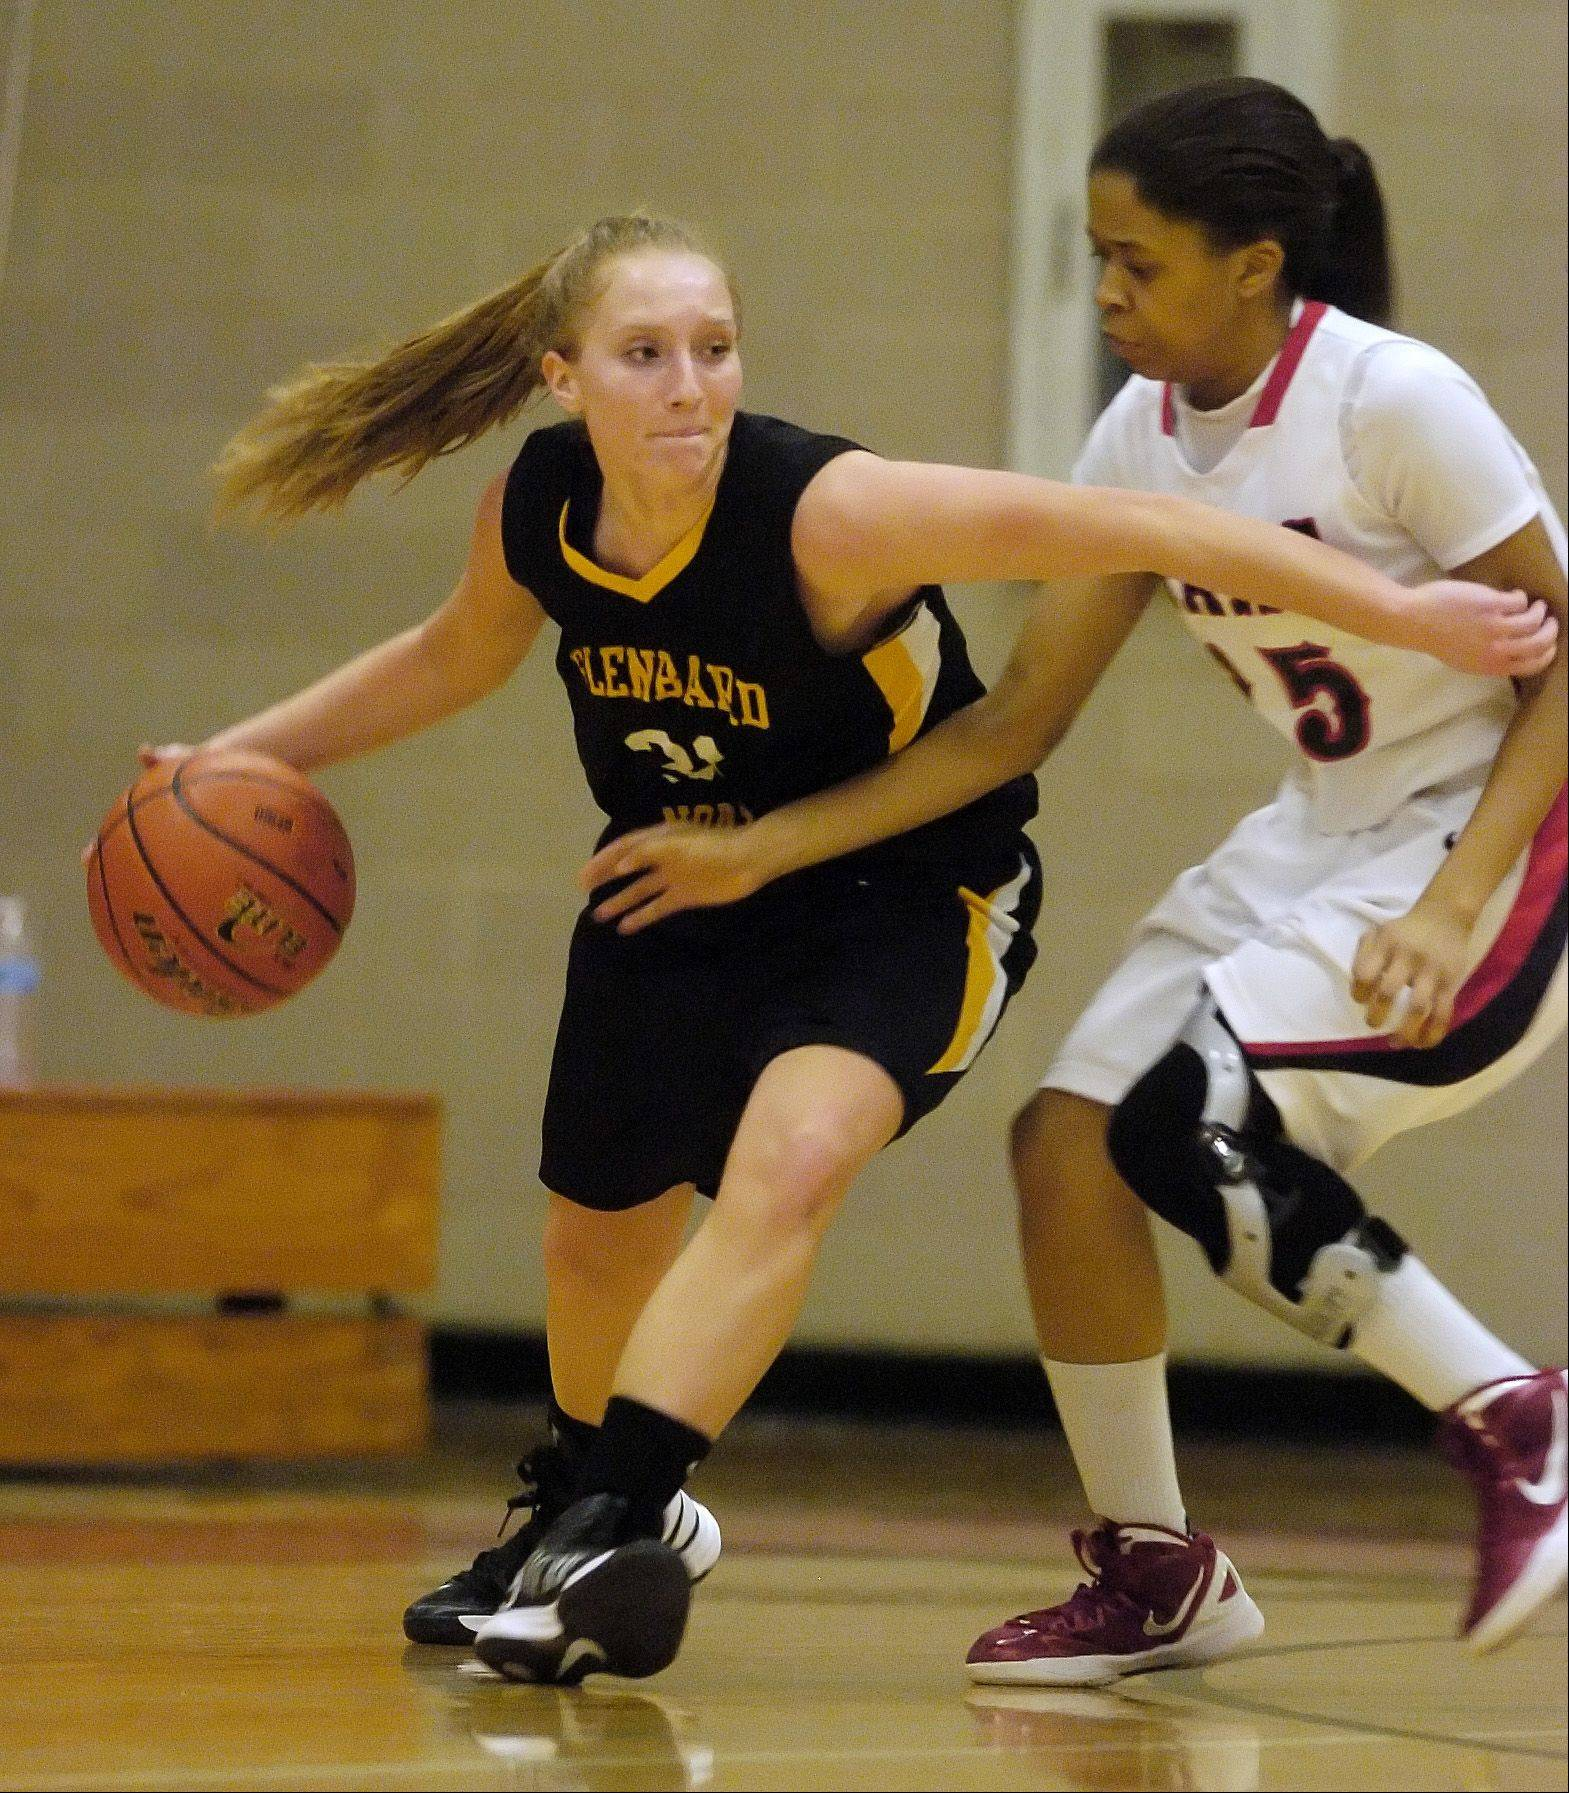 Images: Glenbard East vs. Glenbard North, girls basketball